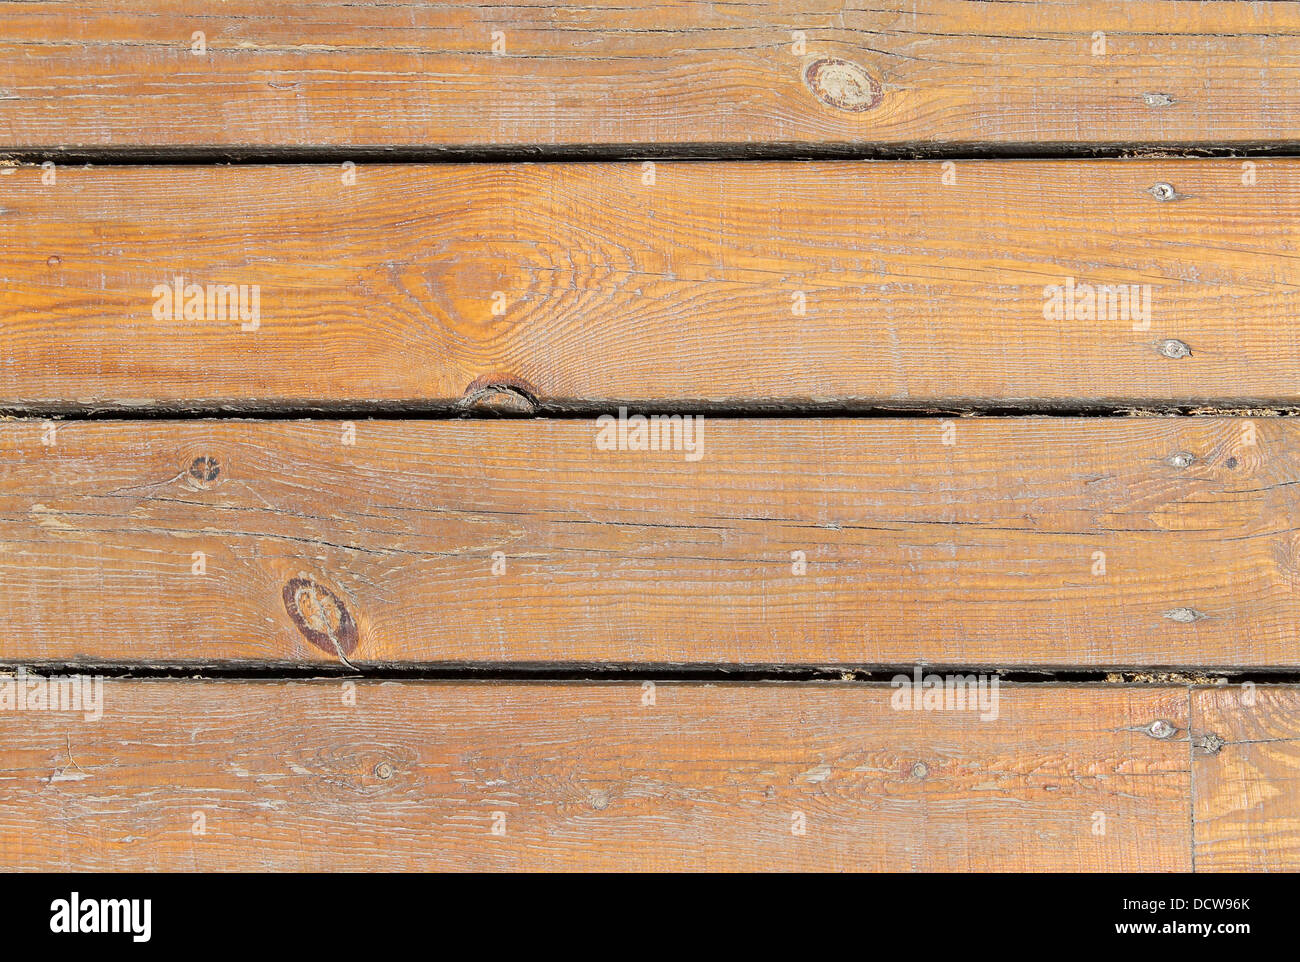 Overhead view of textured brown wooden background. - Stock Image